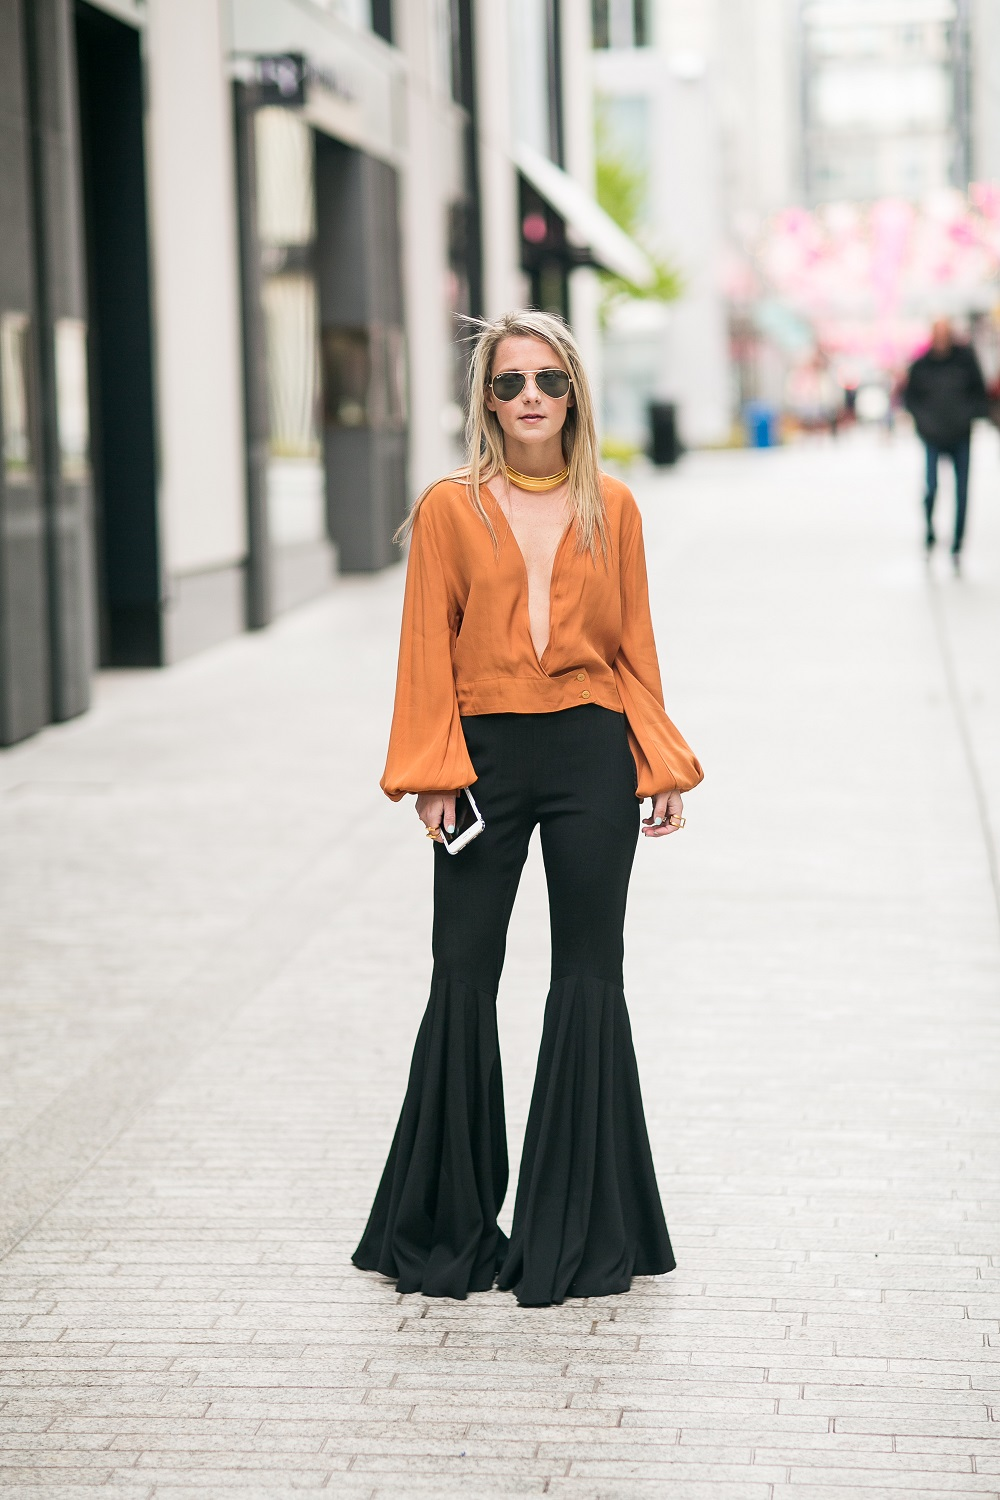 flared_pants_bell_Sleeve_Top